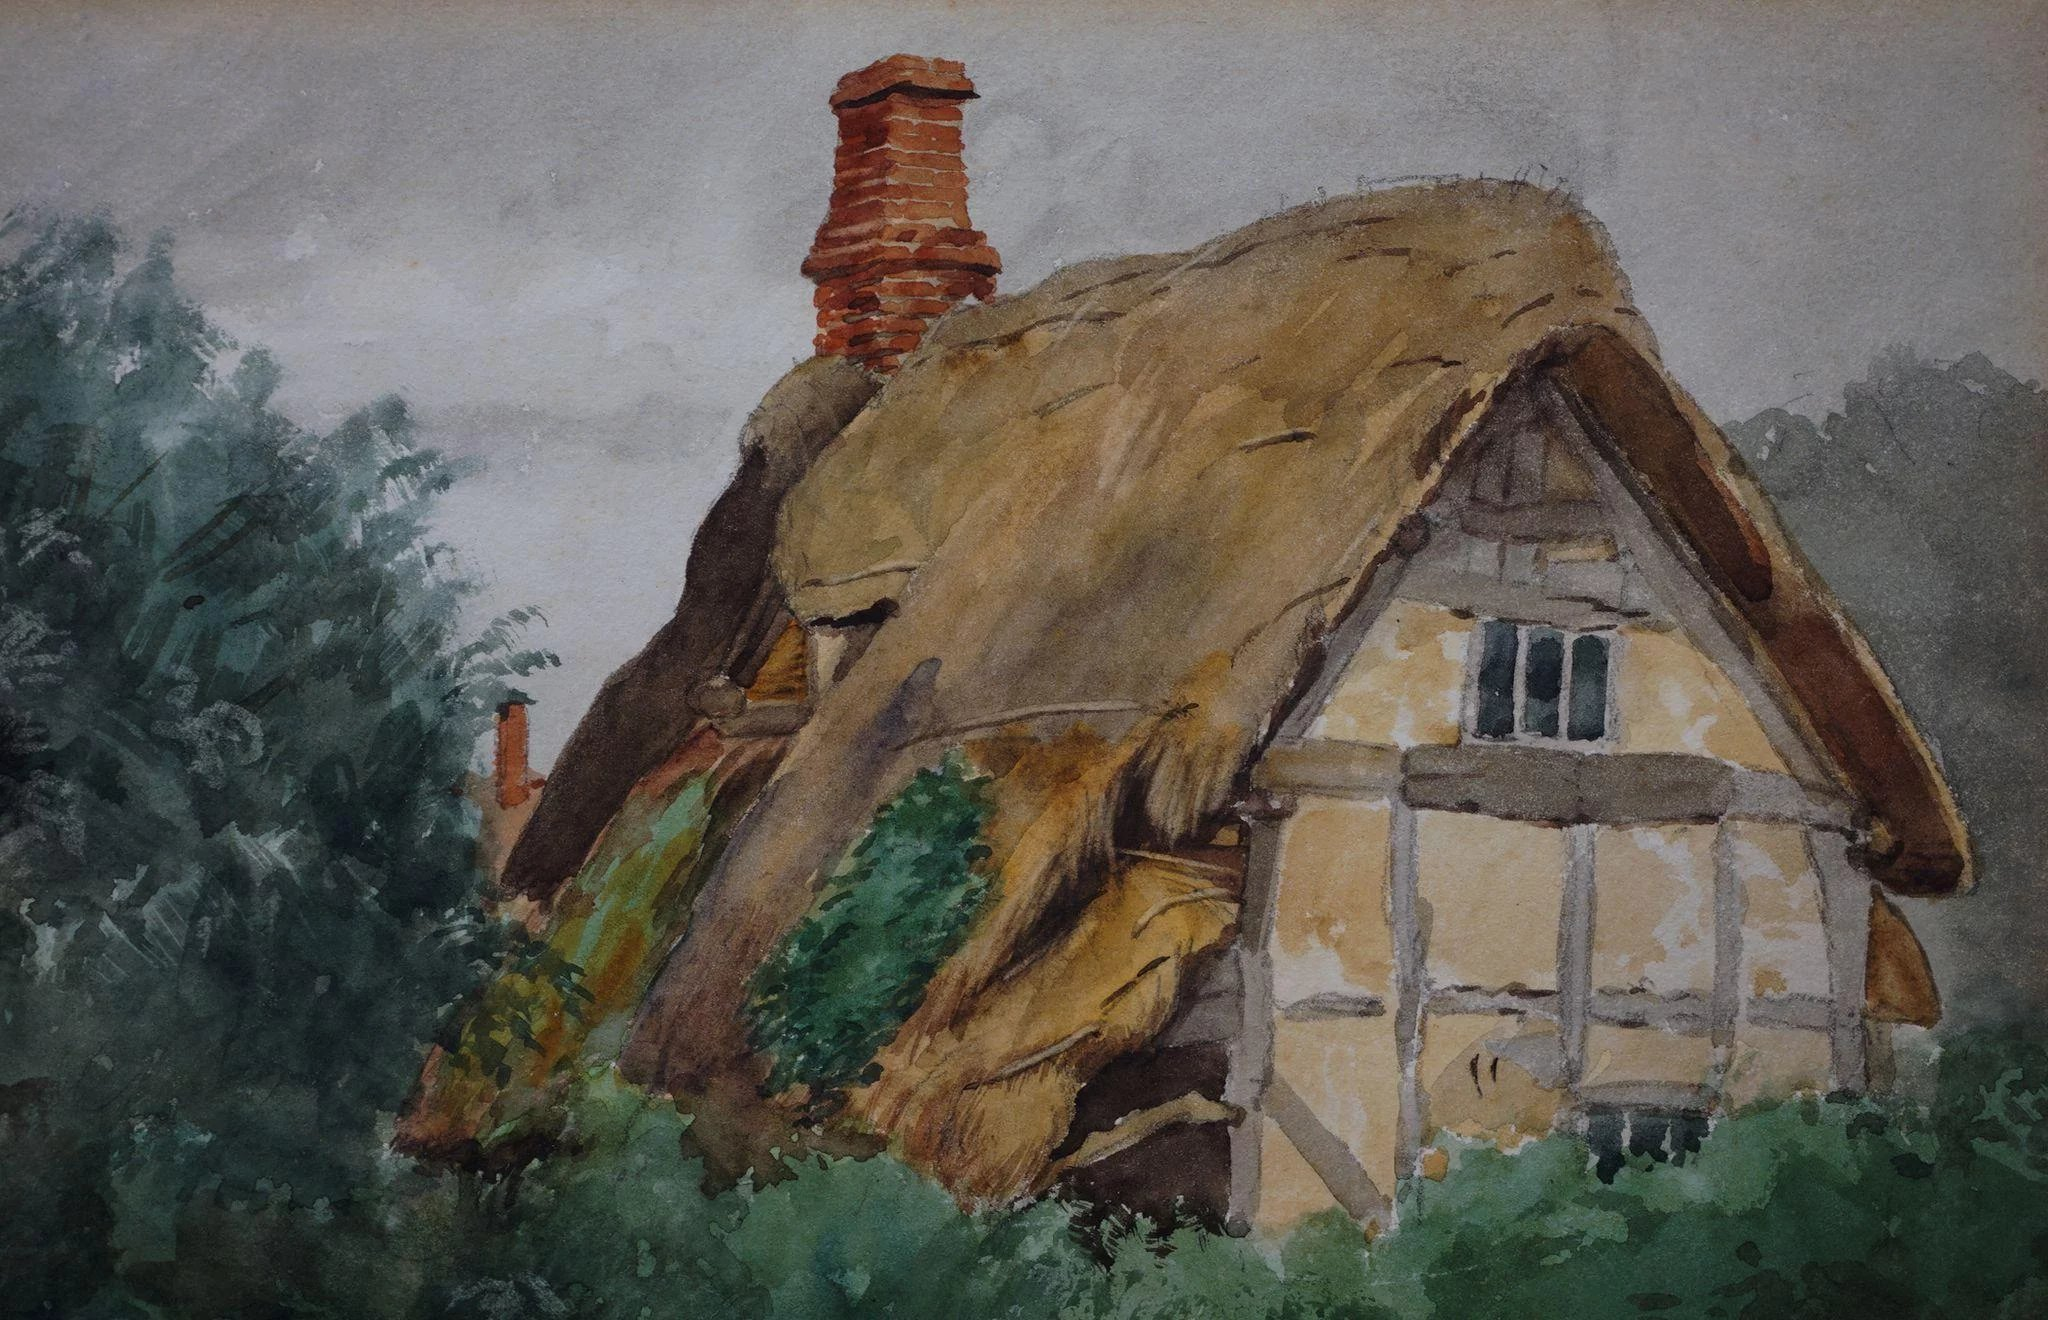 Sidney Currie Watercolor Thatched Roof Cottage English